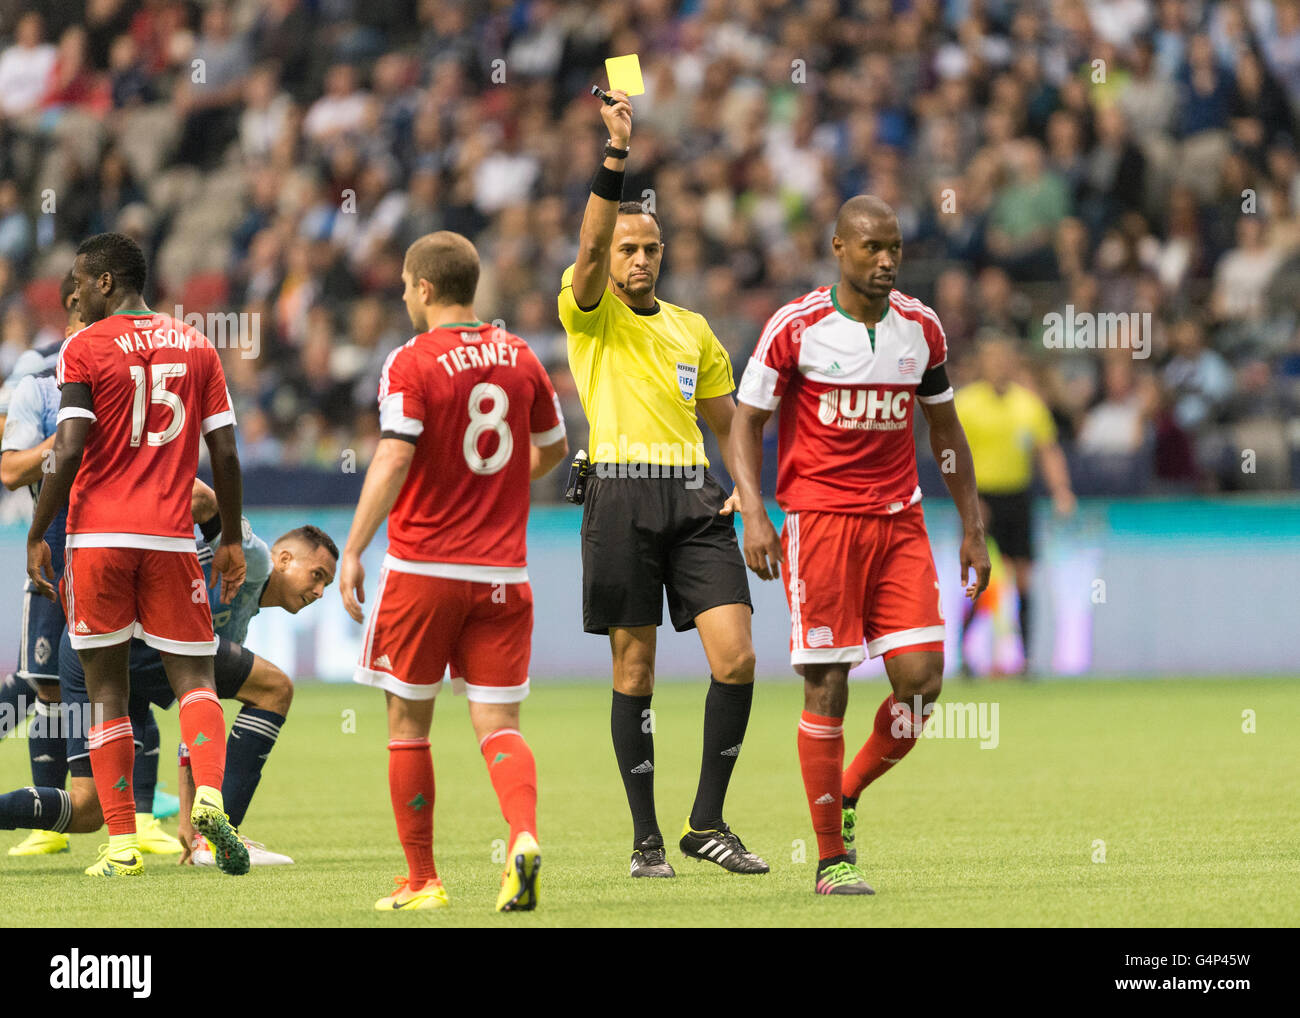 Vancouver, Canada. 18 June, 2016. New England Revolution defender Jose Goncalves (23) getting a yellow card. Vancouver - Stock Image